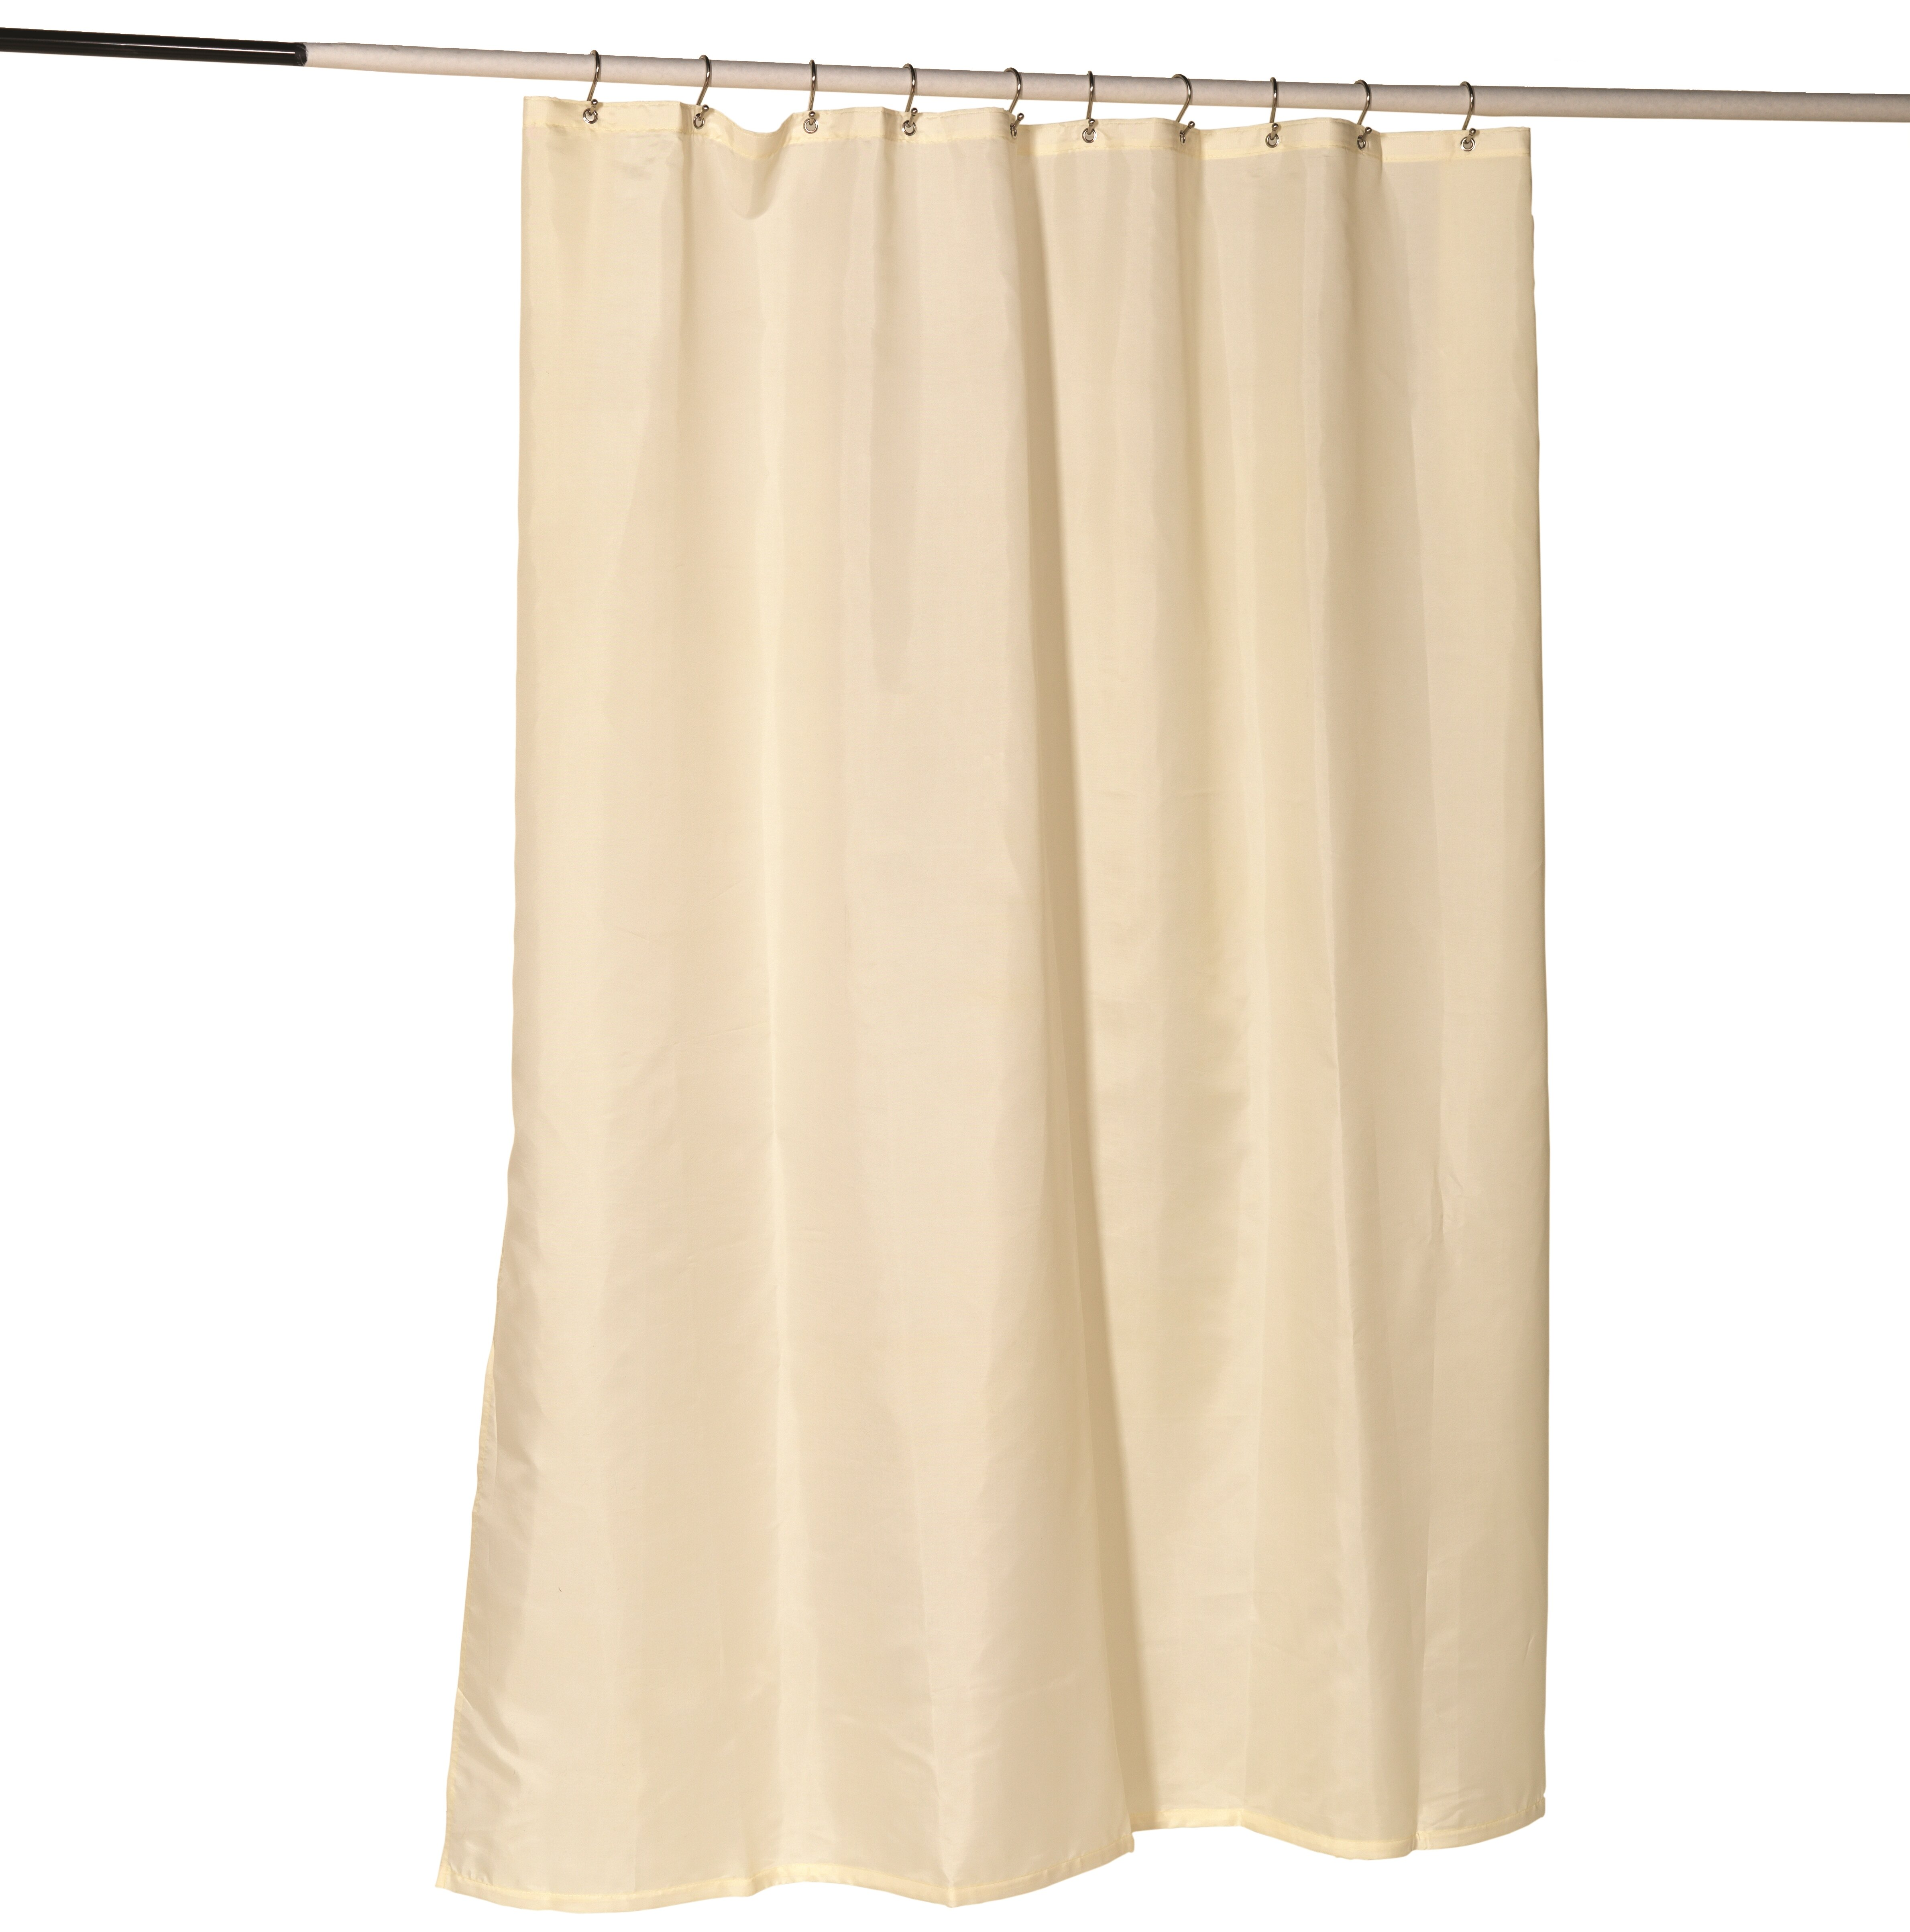 Halfon Nylon Fabric Single Shower Curtain Liner With Reinforced Header And Metal Grommets